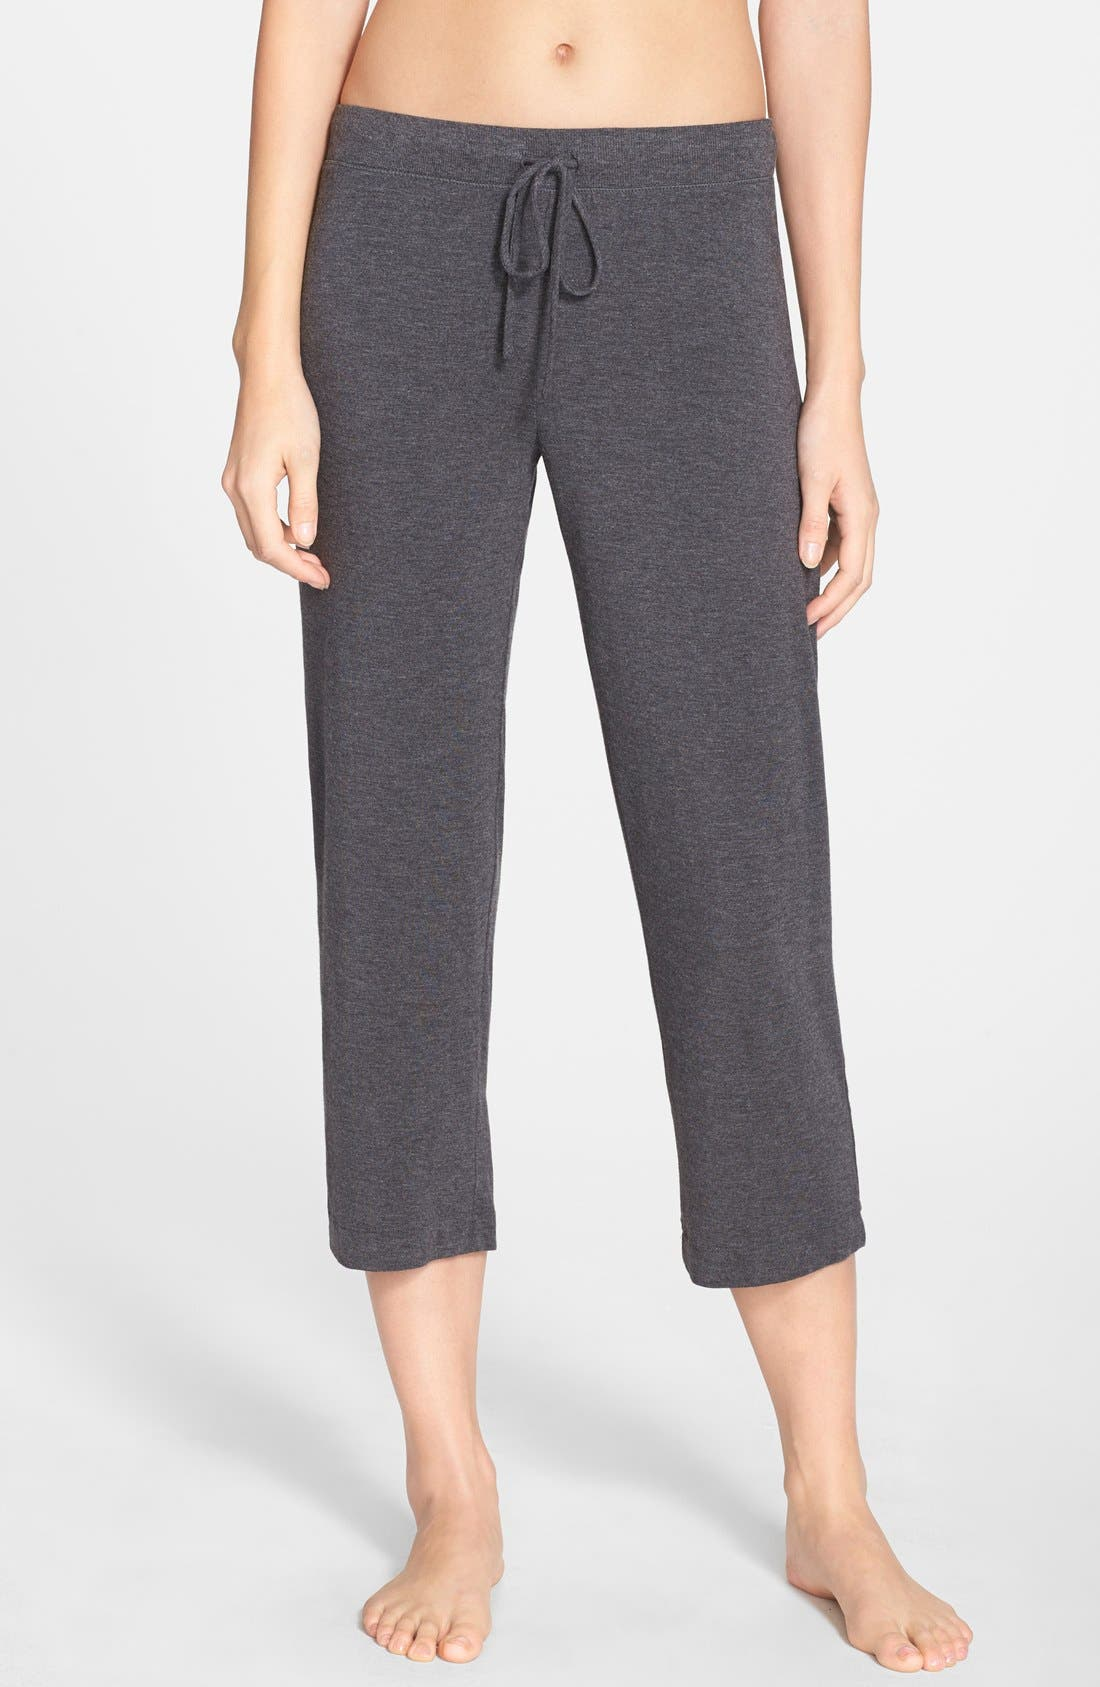 Main Image - DKNY 'Urban Essentials' Capri Pants